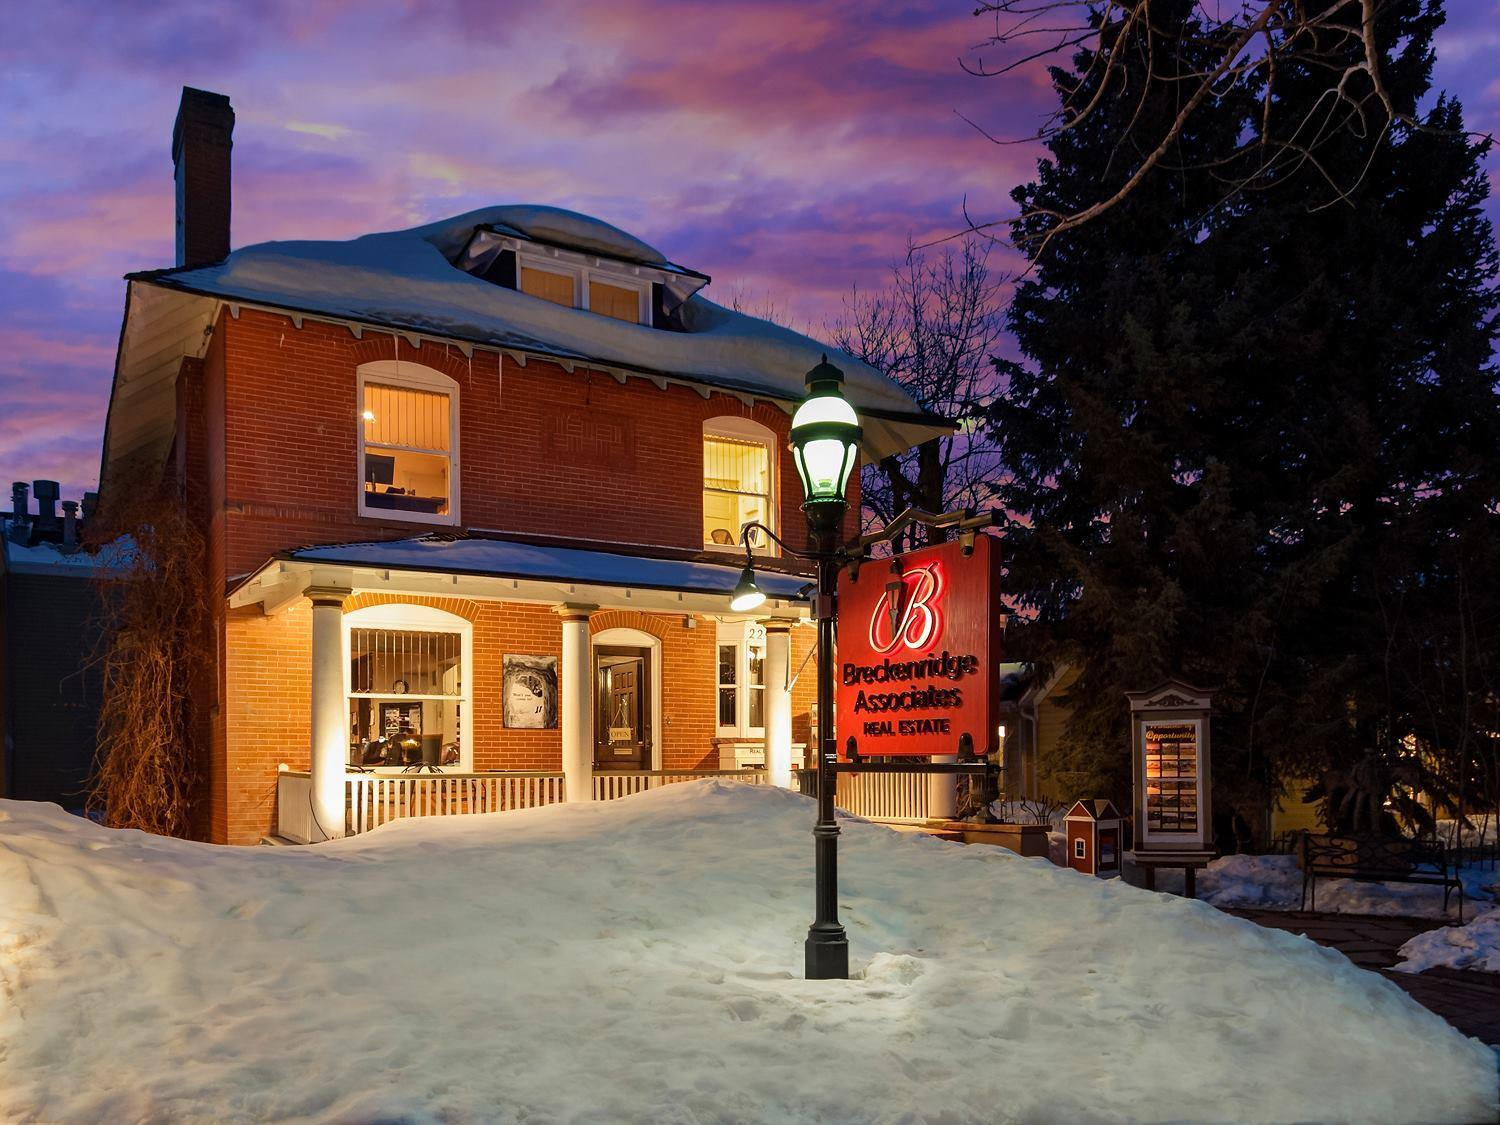 Breckenridge Associates Real Estate office on Main Street, Breckenridge, Colorado